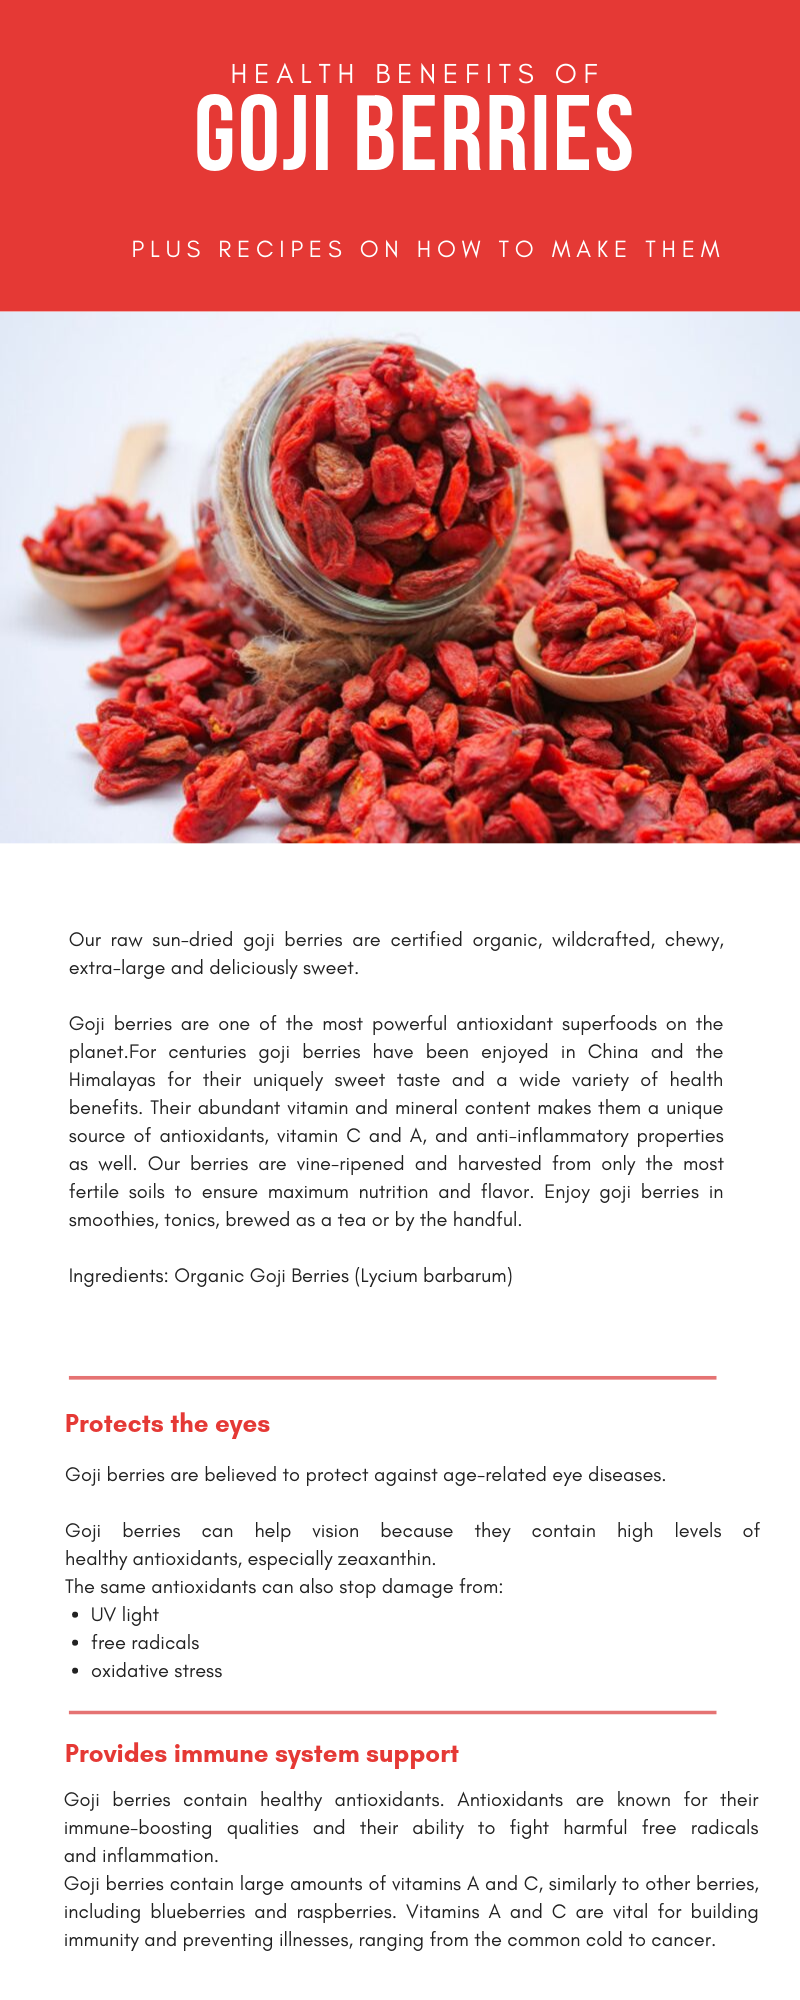 Our raw sun-dried goji berries are certified organic, wildcrafted, chewy, extra-large and deliciously sweet.   Goji berries are one of the most powerful antioxidant superfoods on the planet.For centuries goji berries have been enjoyed in China and the Himalayas for their uniquely sweet taste and a wide variety of health benefits. Their abundant vitamin and mineral content makes them a unique source of antioxidants, vitamin C and A, and anti-inflammatory properties as well. Our berries are vine-ripened and harvested from only the most fertile soils to ensure maximum nutrition and flavor. Enjoy goji berries in smoothies, tonics, brewed as a tea or by the handful.  Ingredients: Organic Goji Berries (Lycium barbarum)